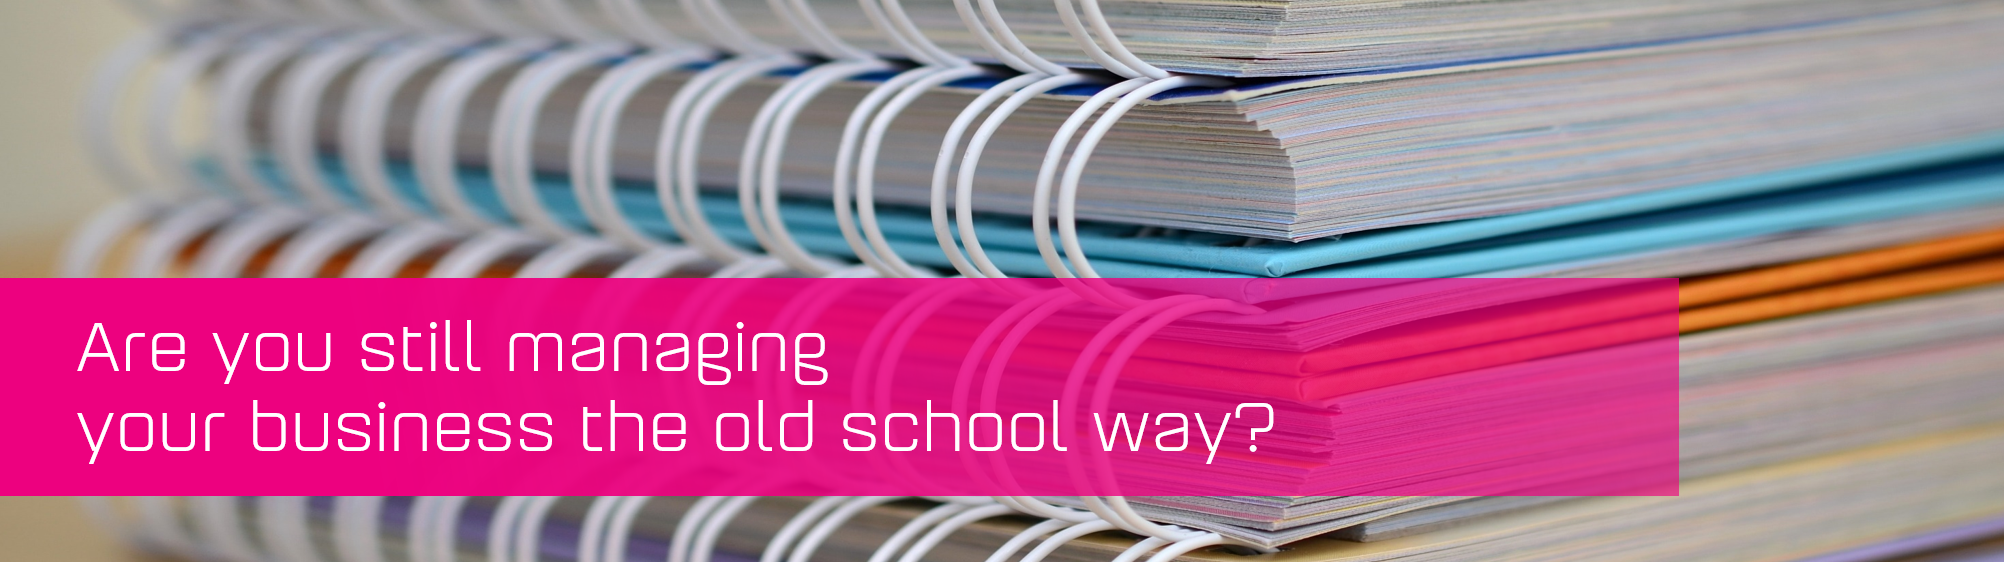 KCS SA - Blog - Are you still managing your business the old school way banner